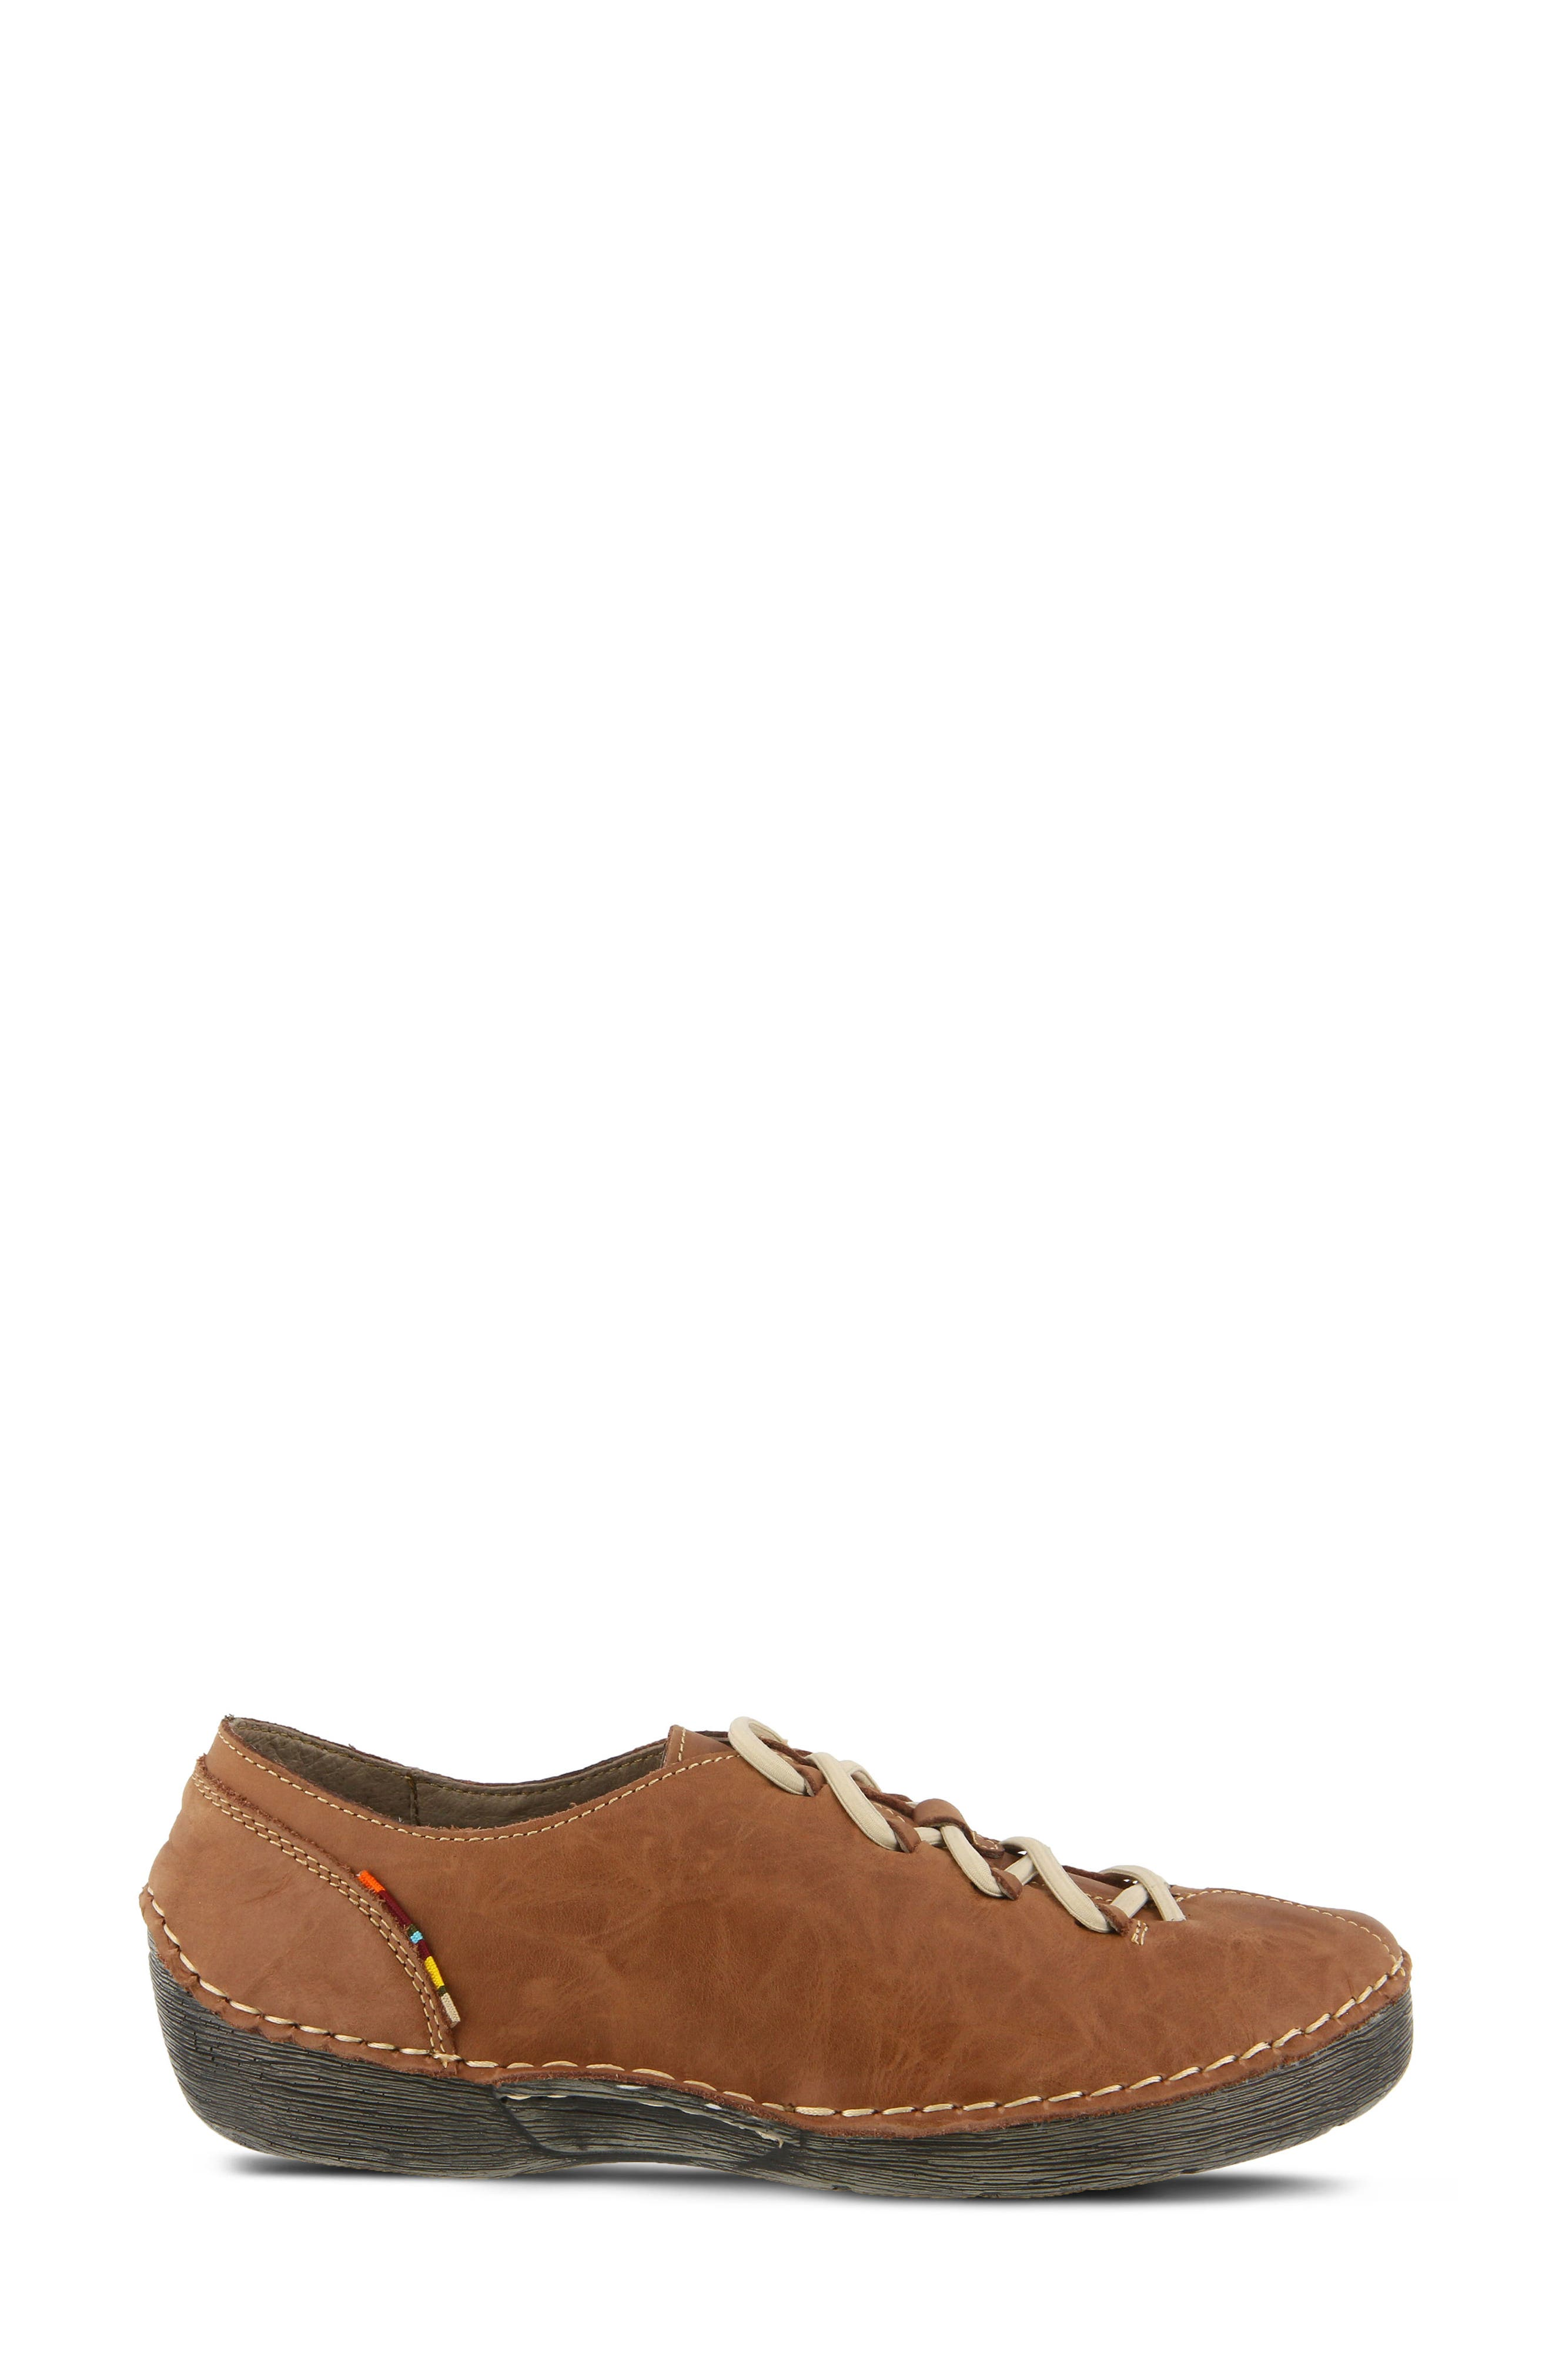 Carhop Sneaker,                             Alternate thumbnail 3, color,                             BROWN LEATHER